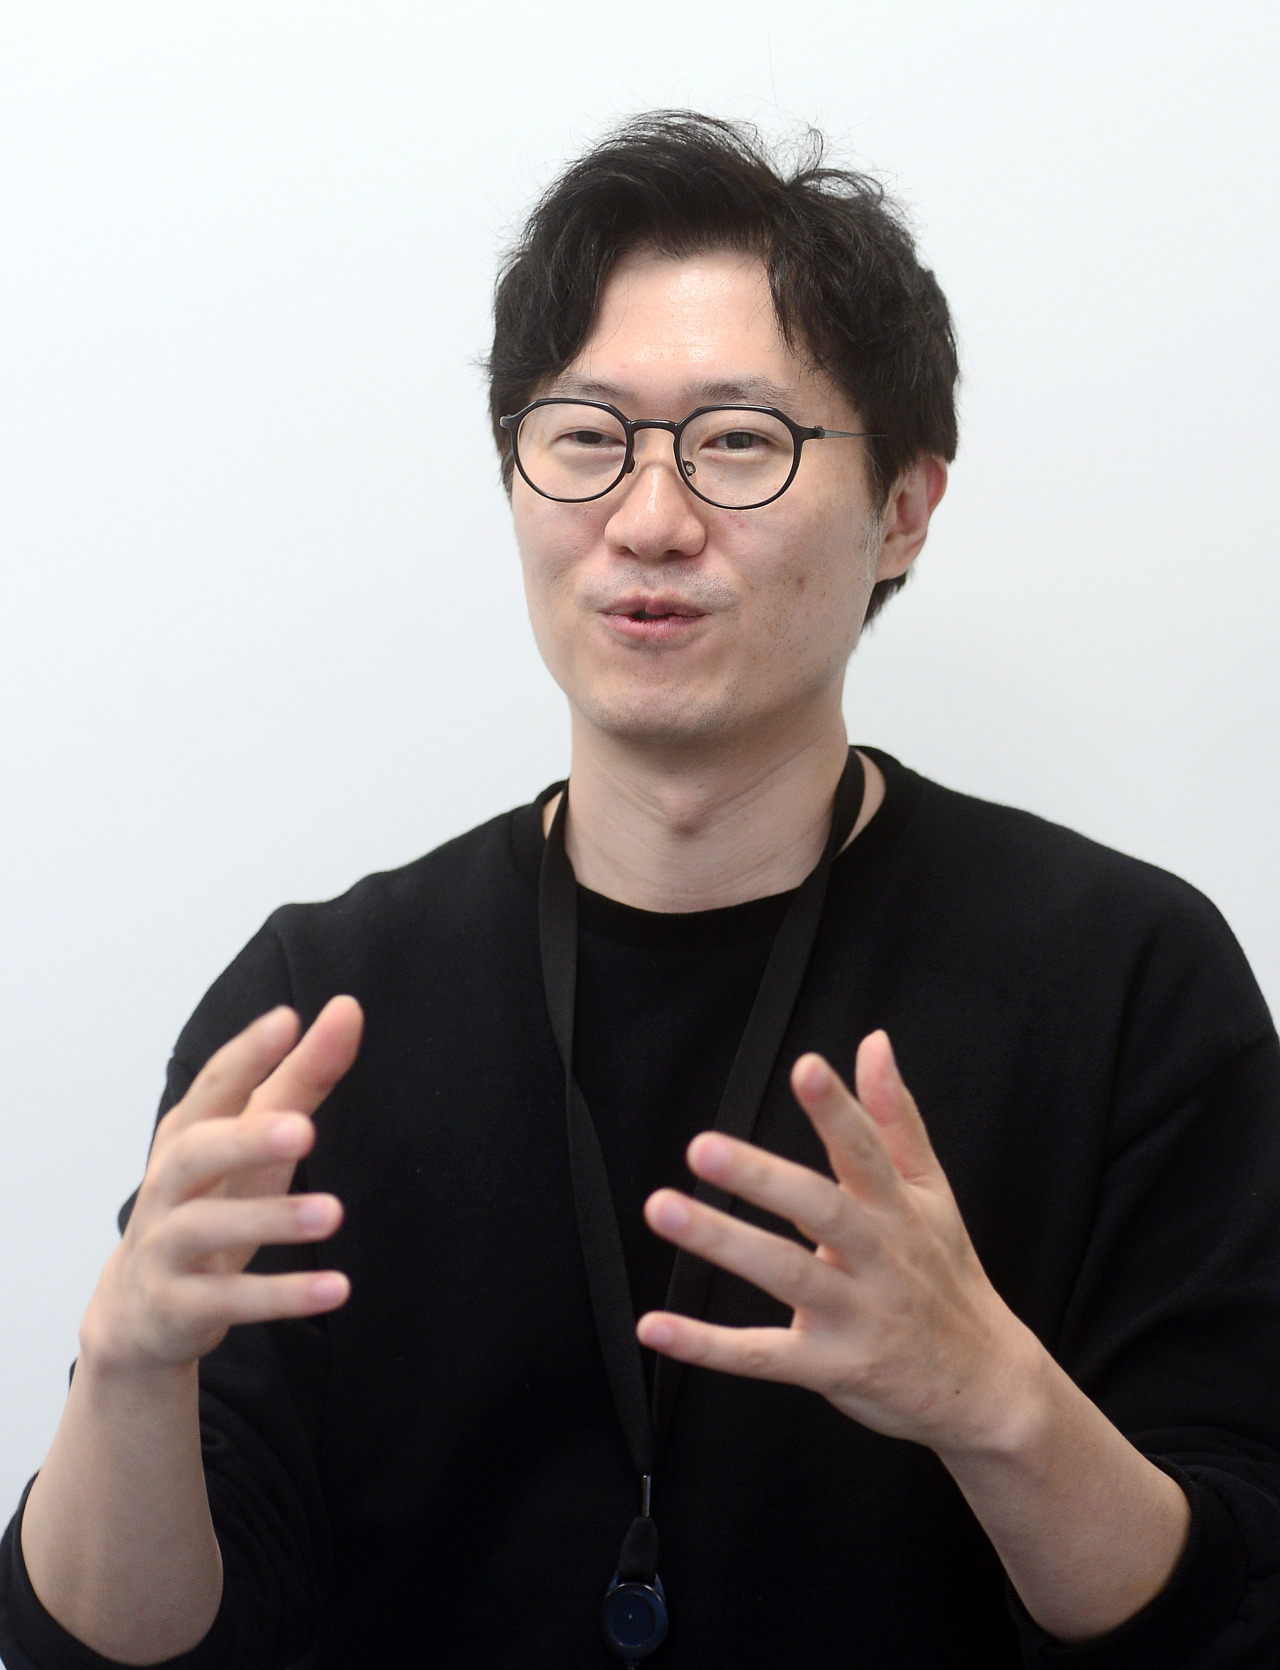 Kwon Young-jin, chief of Hyundai Motor Group's Zer01ne Playground, speaks during an interview with The Korea Herald on Sept. 15. (Lee Sang-sub/The Korea Herald)